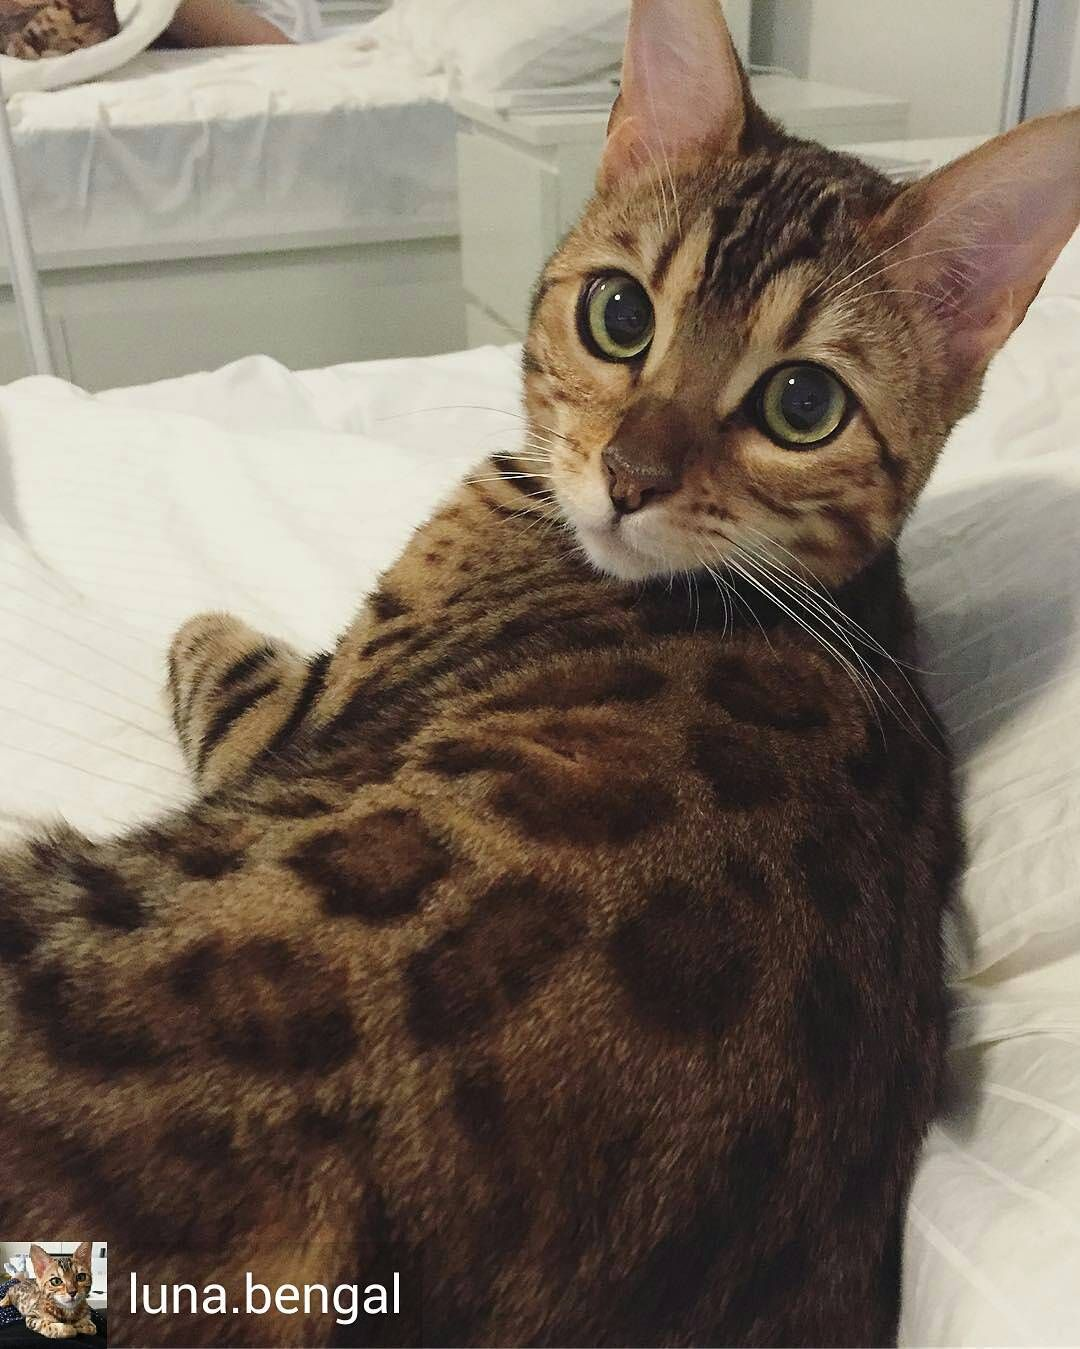 113 Likes, 3 Comments Bengal Cat Lover (bengalcat.page